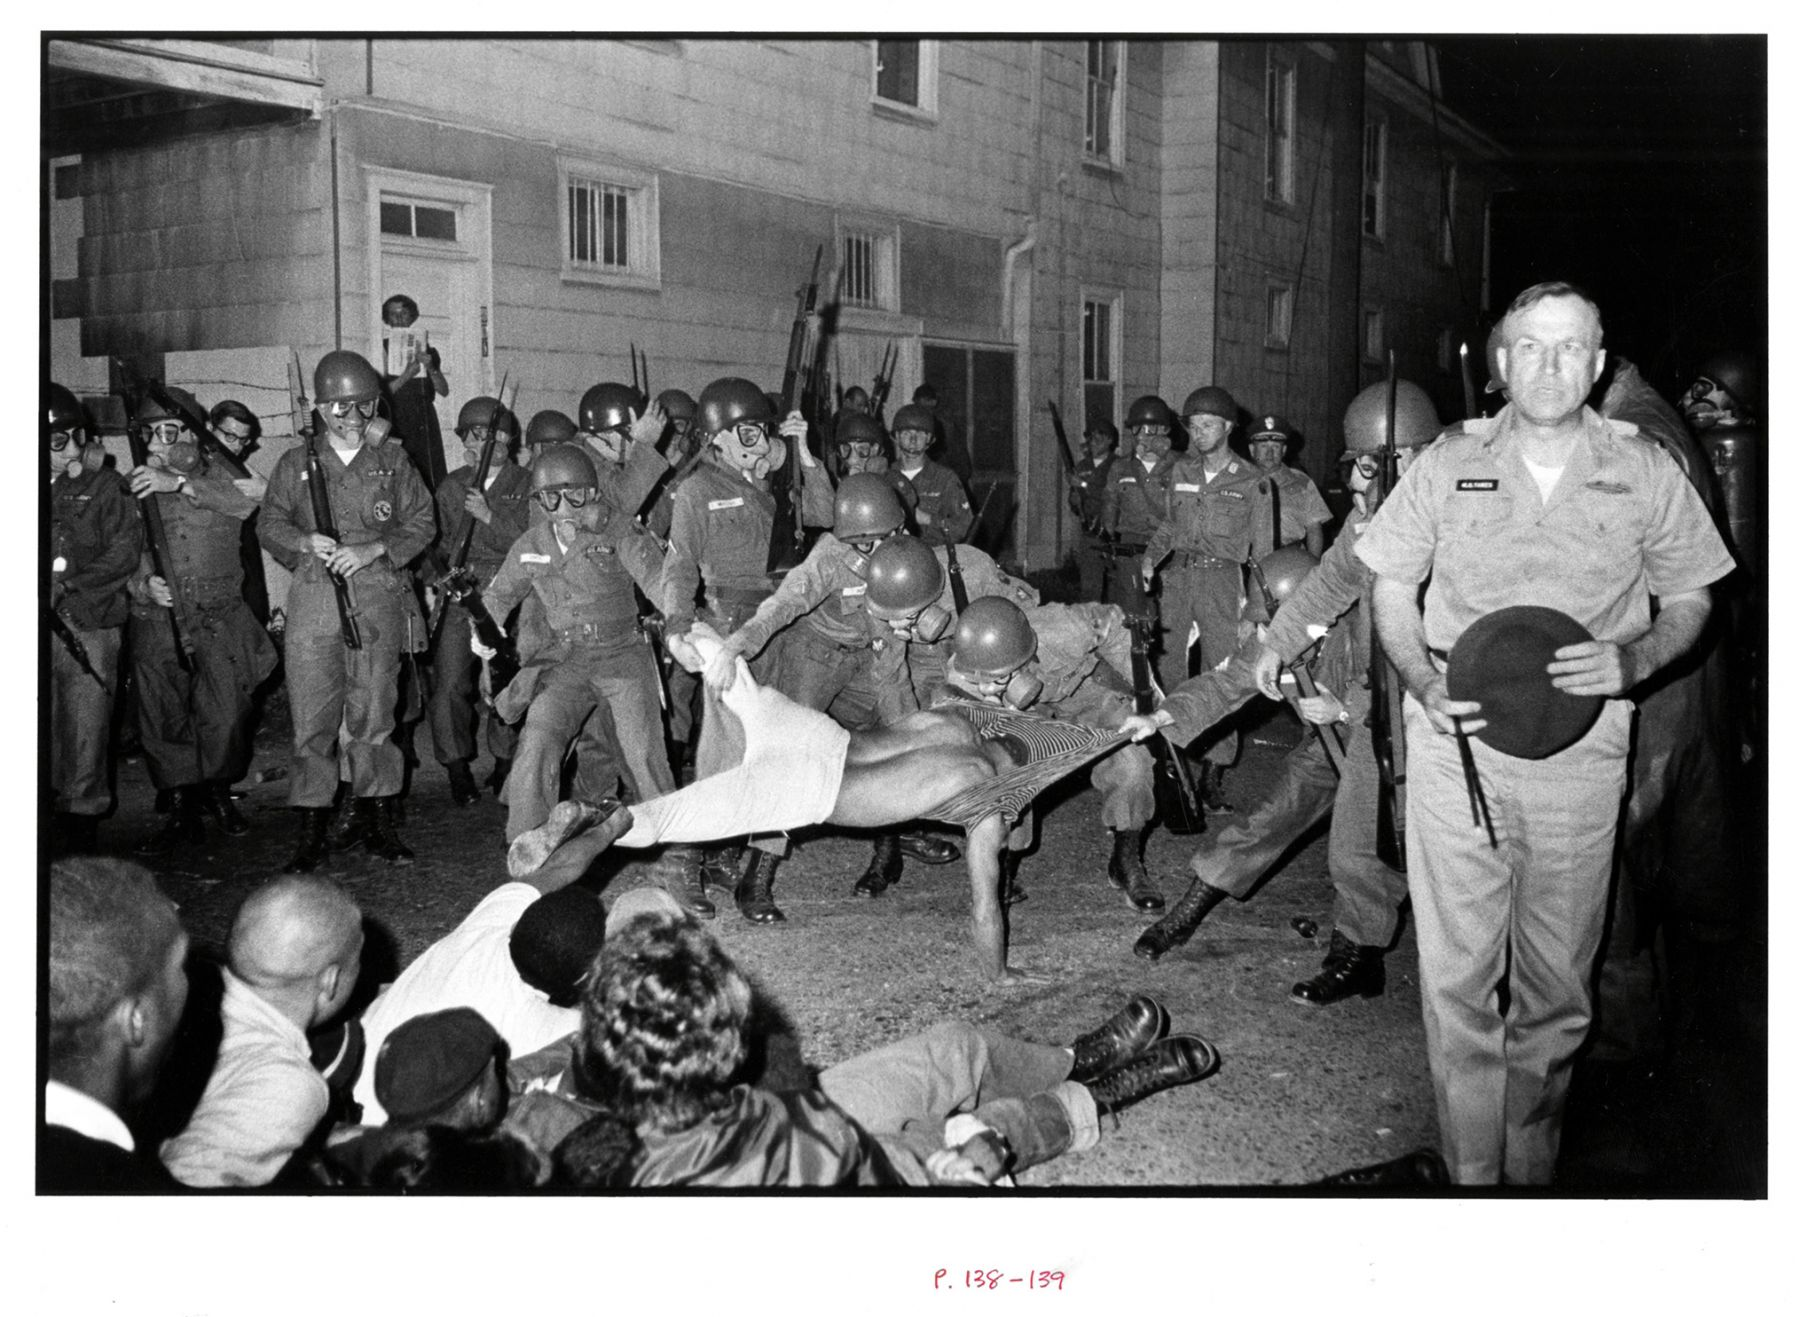 Copyright Danny Lyon / Magnum Photos, Cliff Vaughs, SNCC photographer, Arrested, Cambridge MD Spring,from Memories of The Southern Civil Rights Movement, 1964